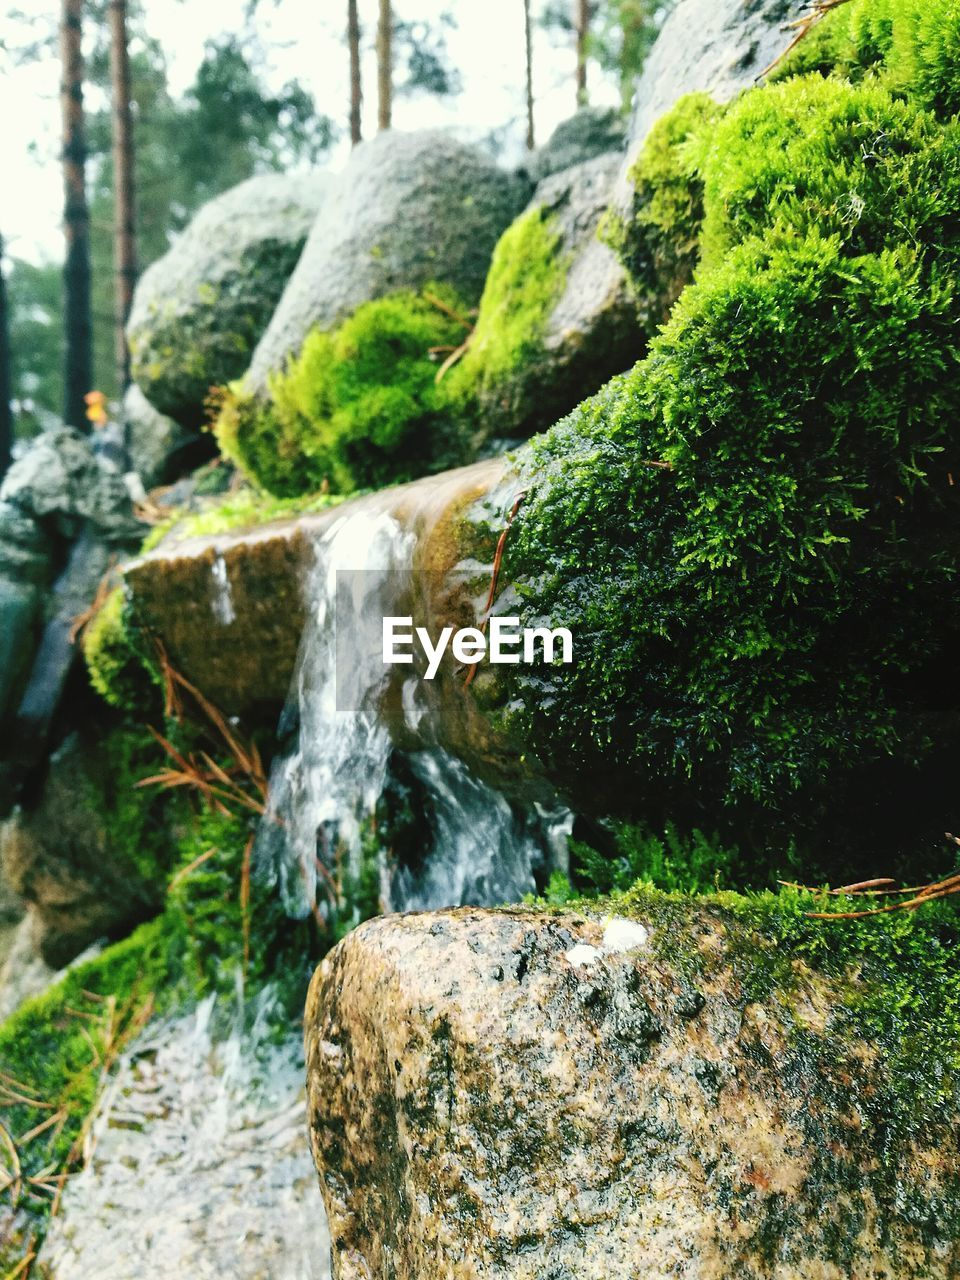 waterfall, rock - object, flowing water, water, motion, moss, nature, long exposure, day, tree, blurred motion, no people, beauty in nature, outdoors, green color, forest, scenics, close-up